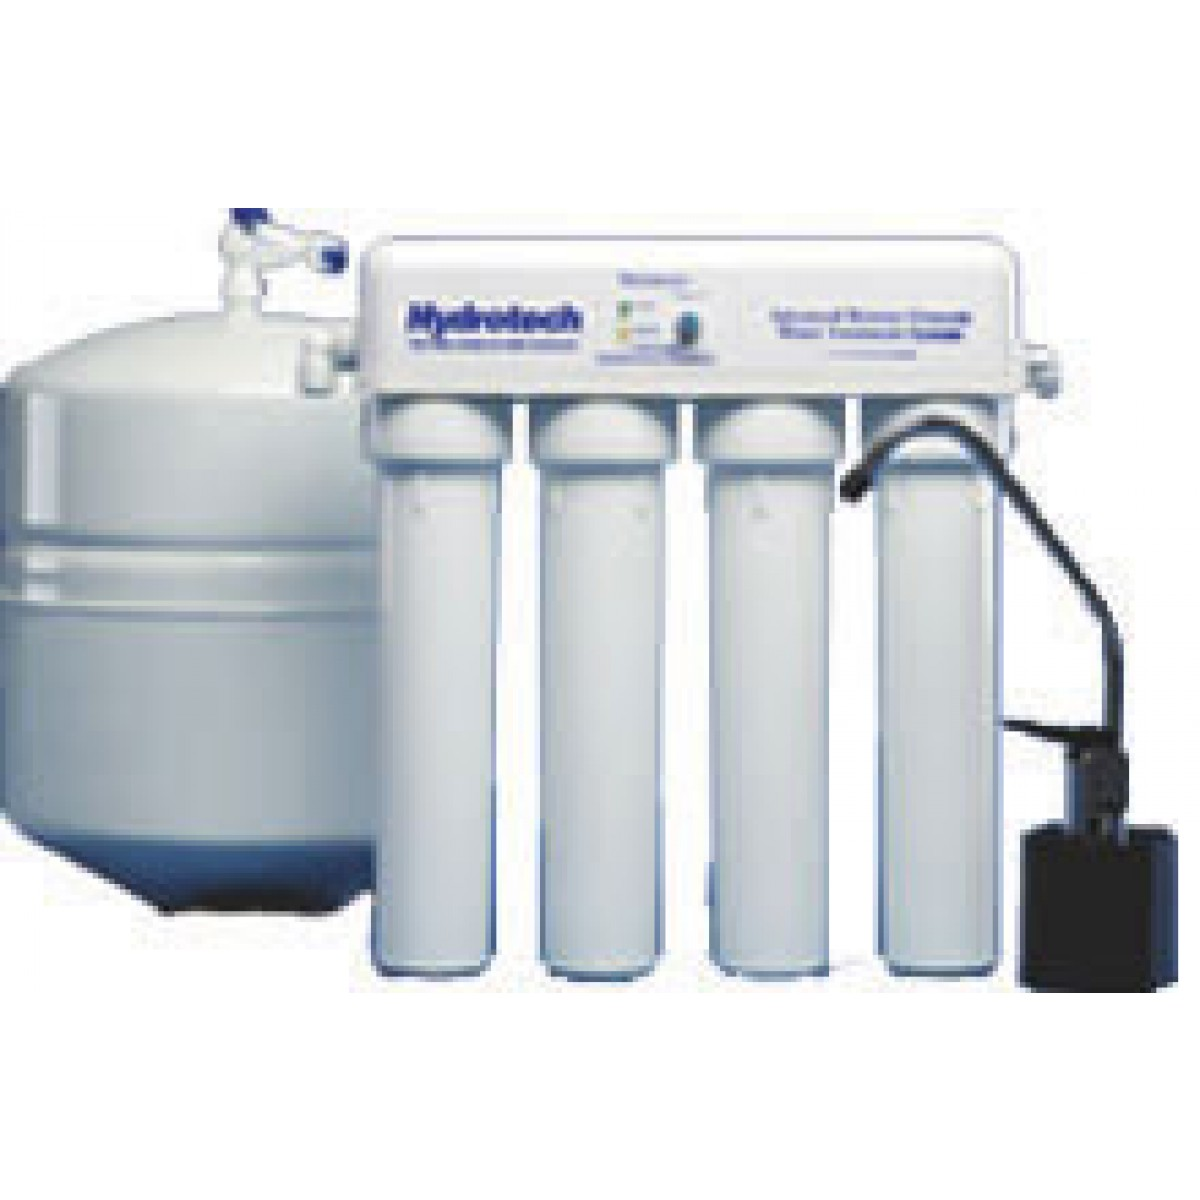 Hydrotech 12403 Smartap Series 1240 Reverse Osmosis System